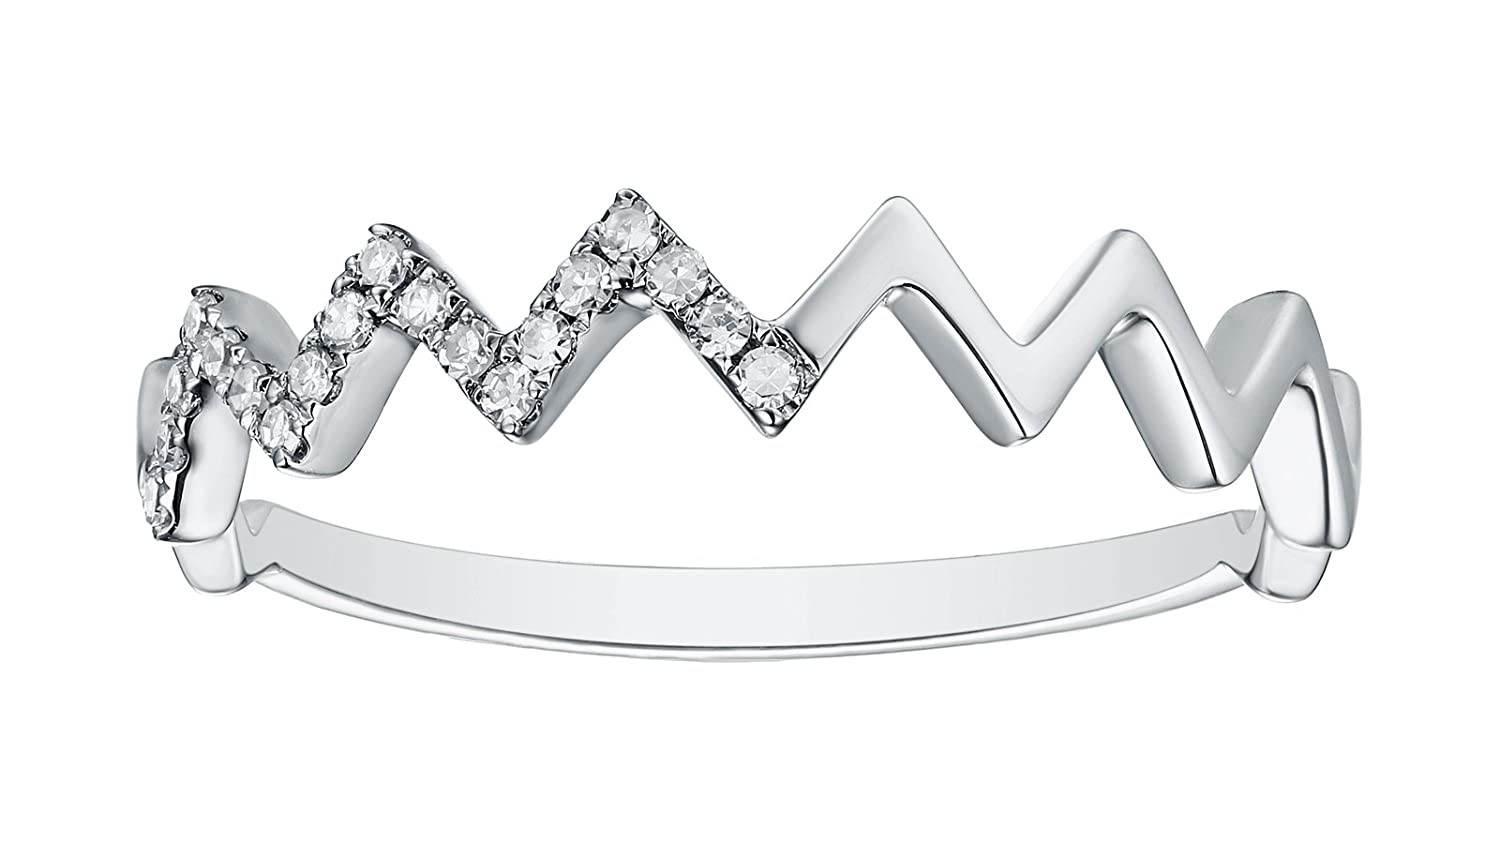 Prism Jewel Natural G-H//I1 Round Diamond Delicate Stackable Ring 10K Gold